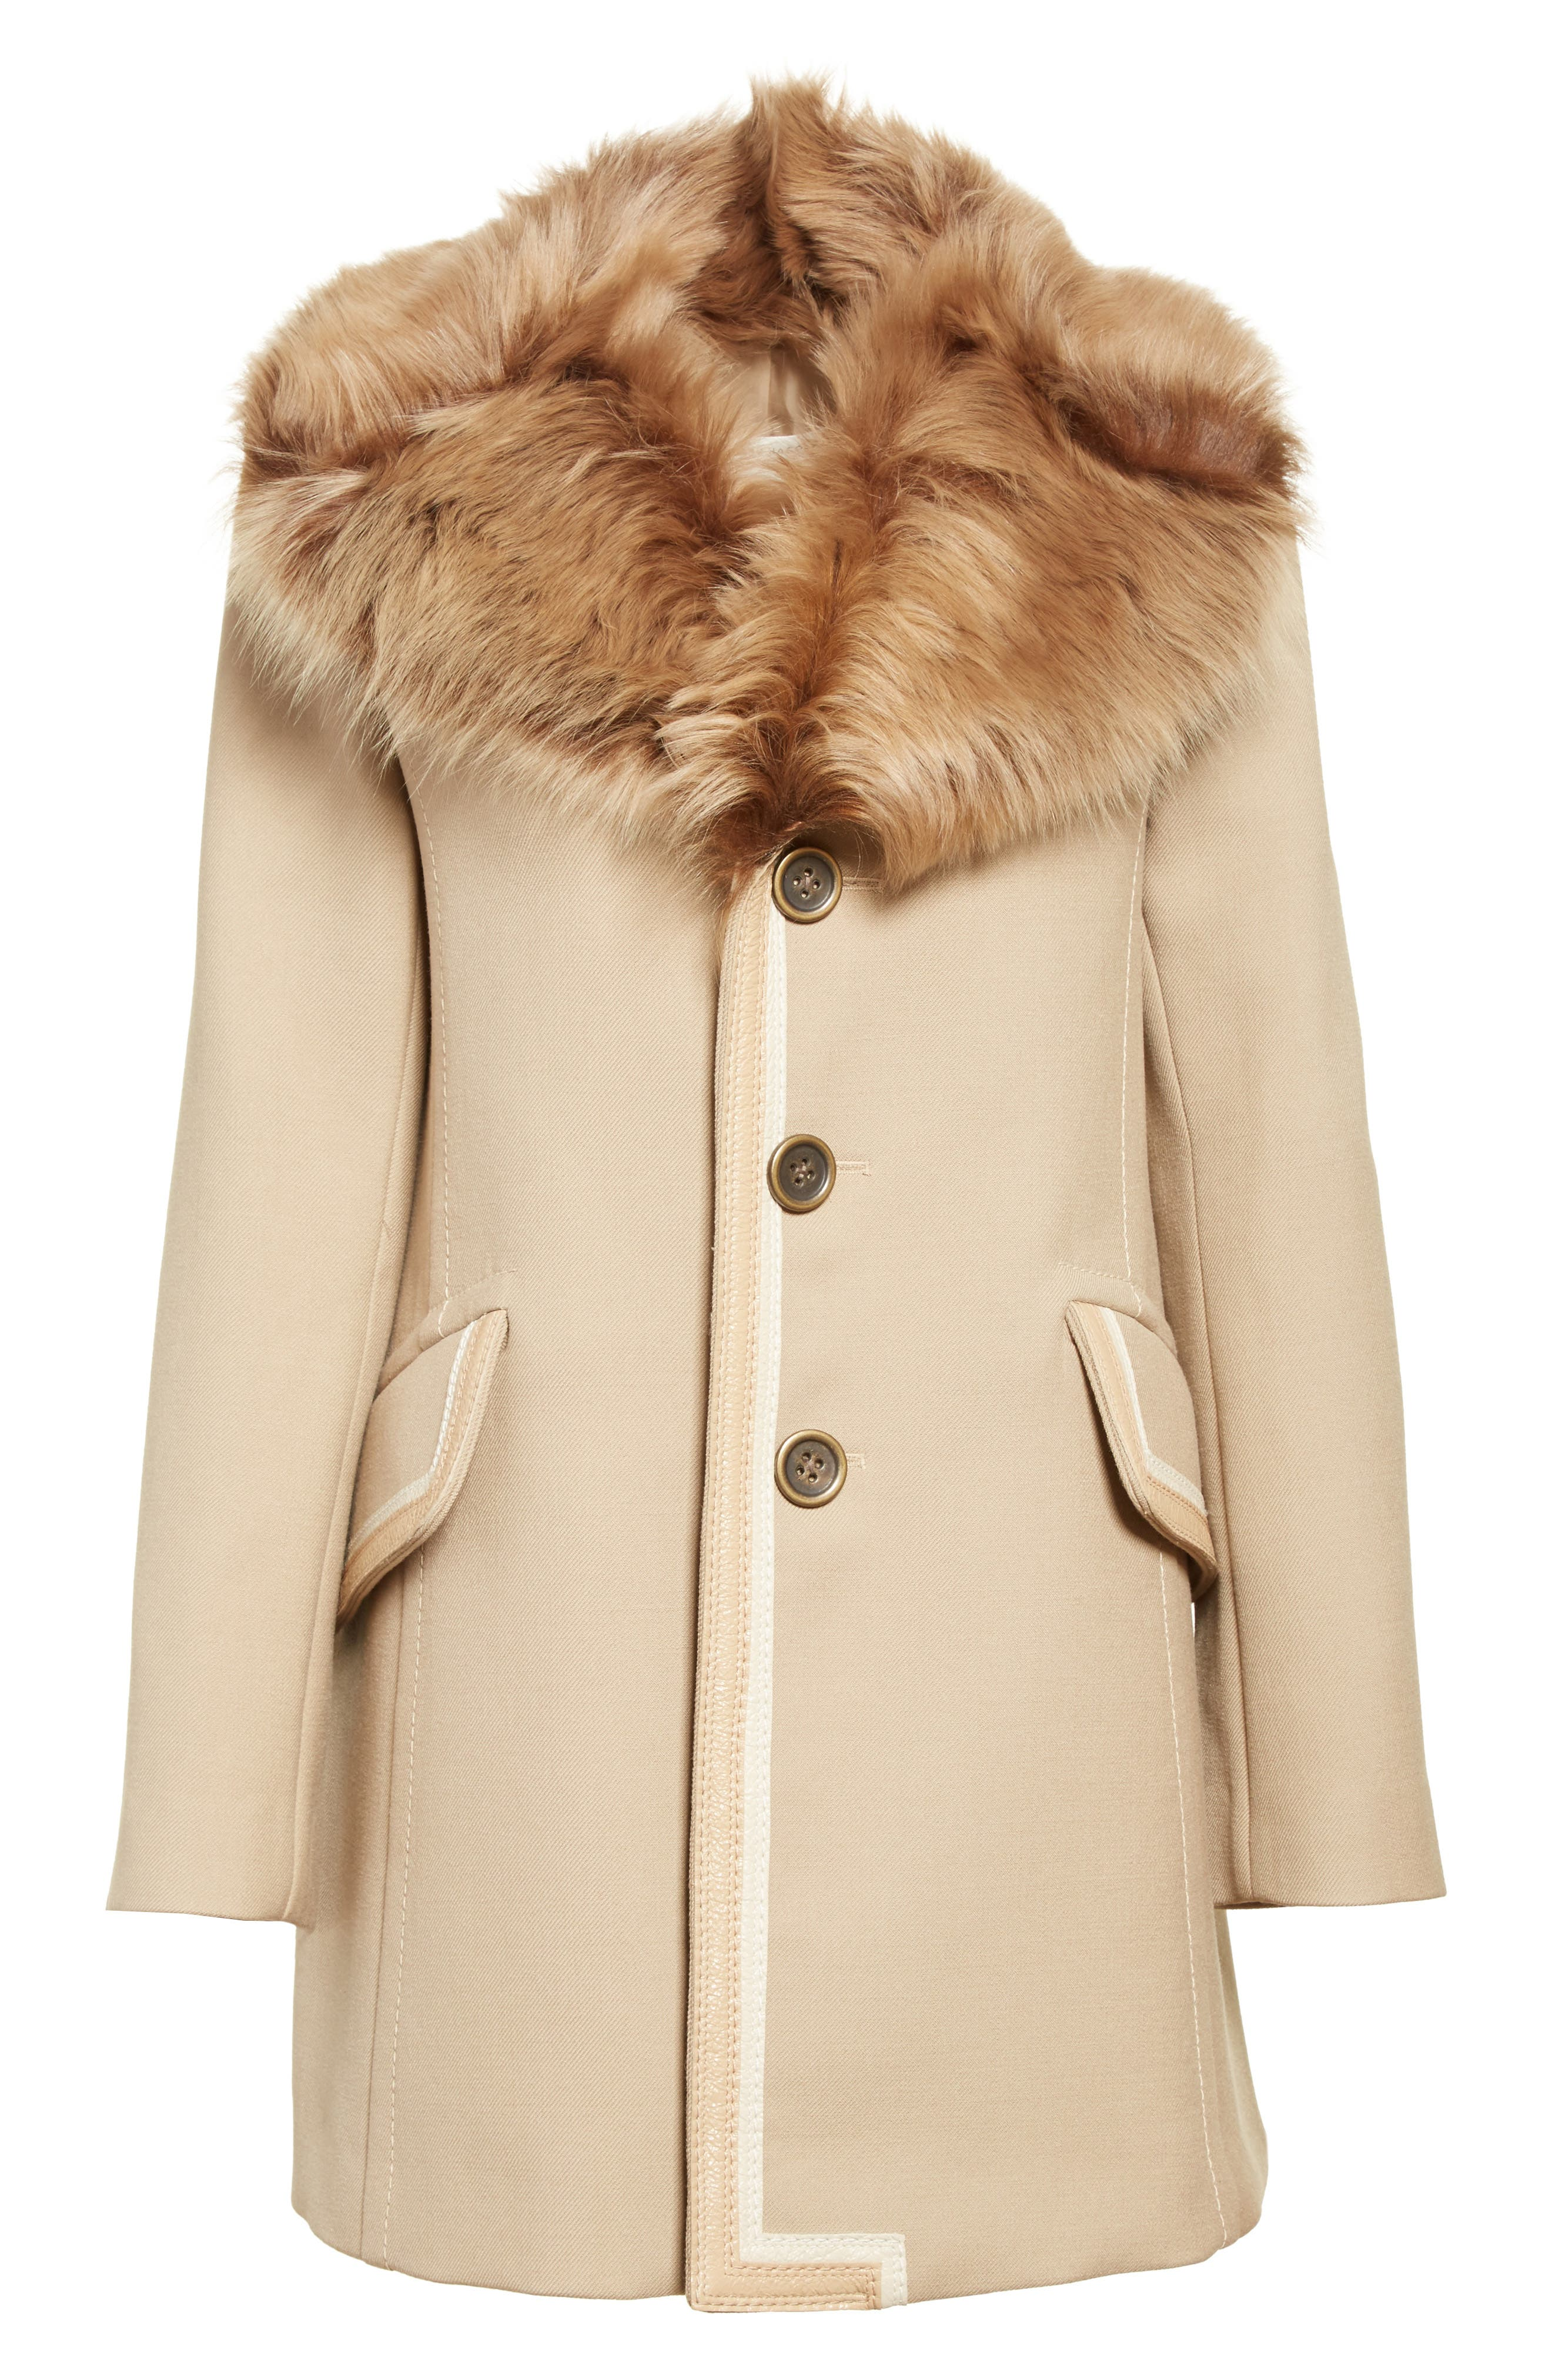 Double Face Wool Blend Coat with Removable Genuine Lamb Fur Collar,                             Alternate thumbnail 7, color,                             Beige